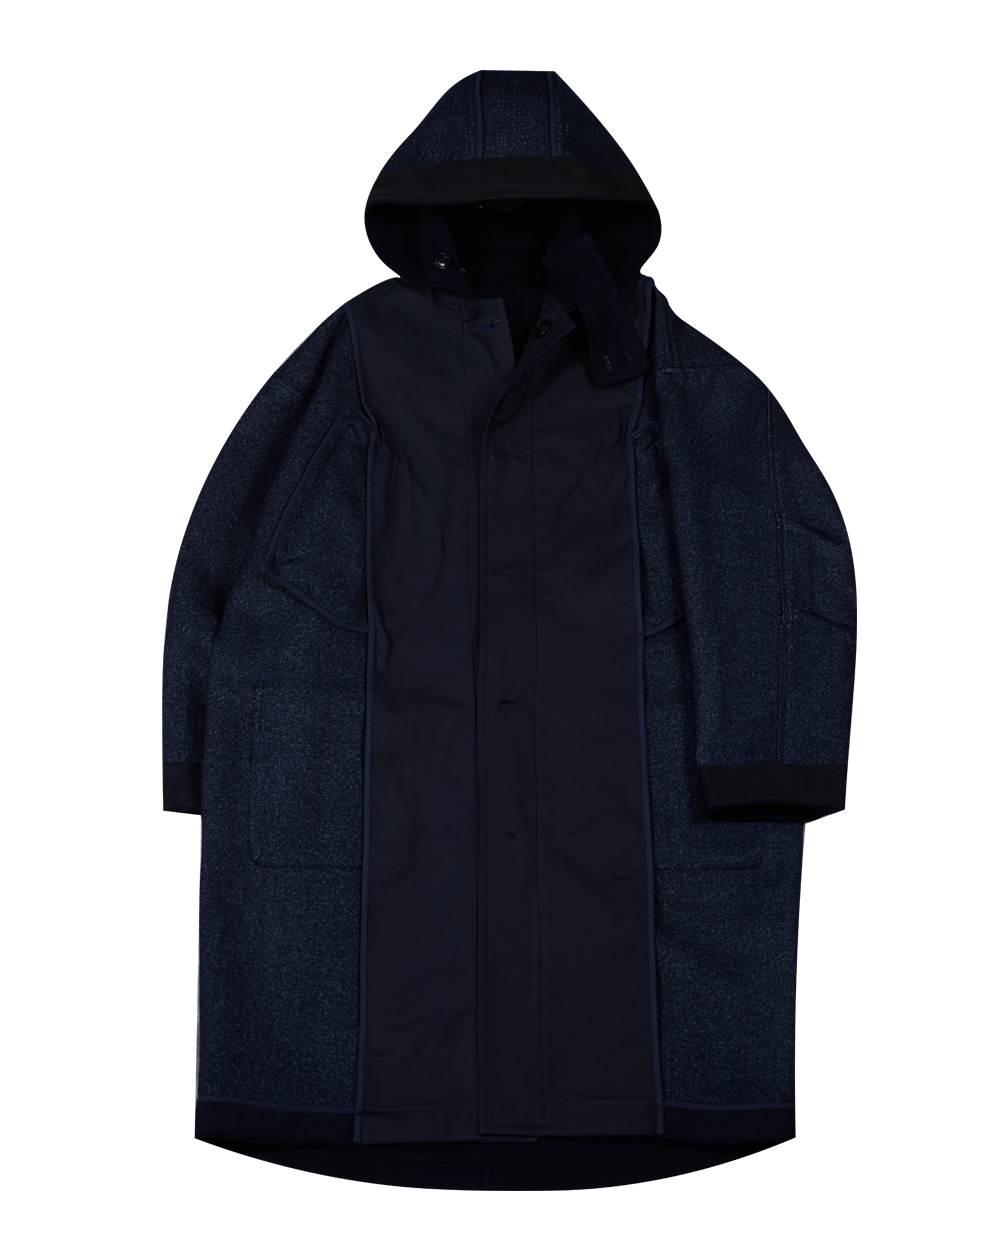 HOODED+WOOL+NAVY+INSIDE.jpg